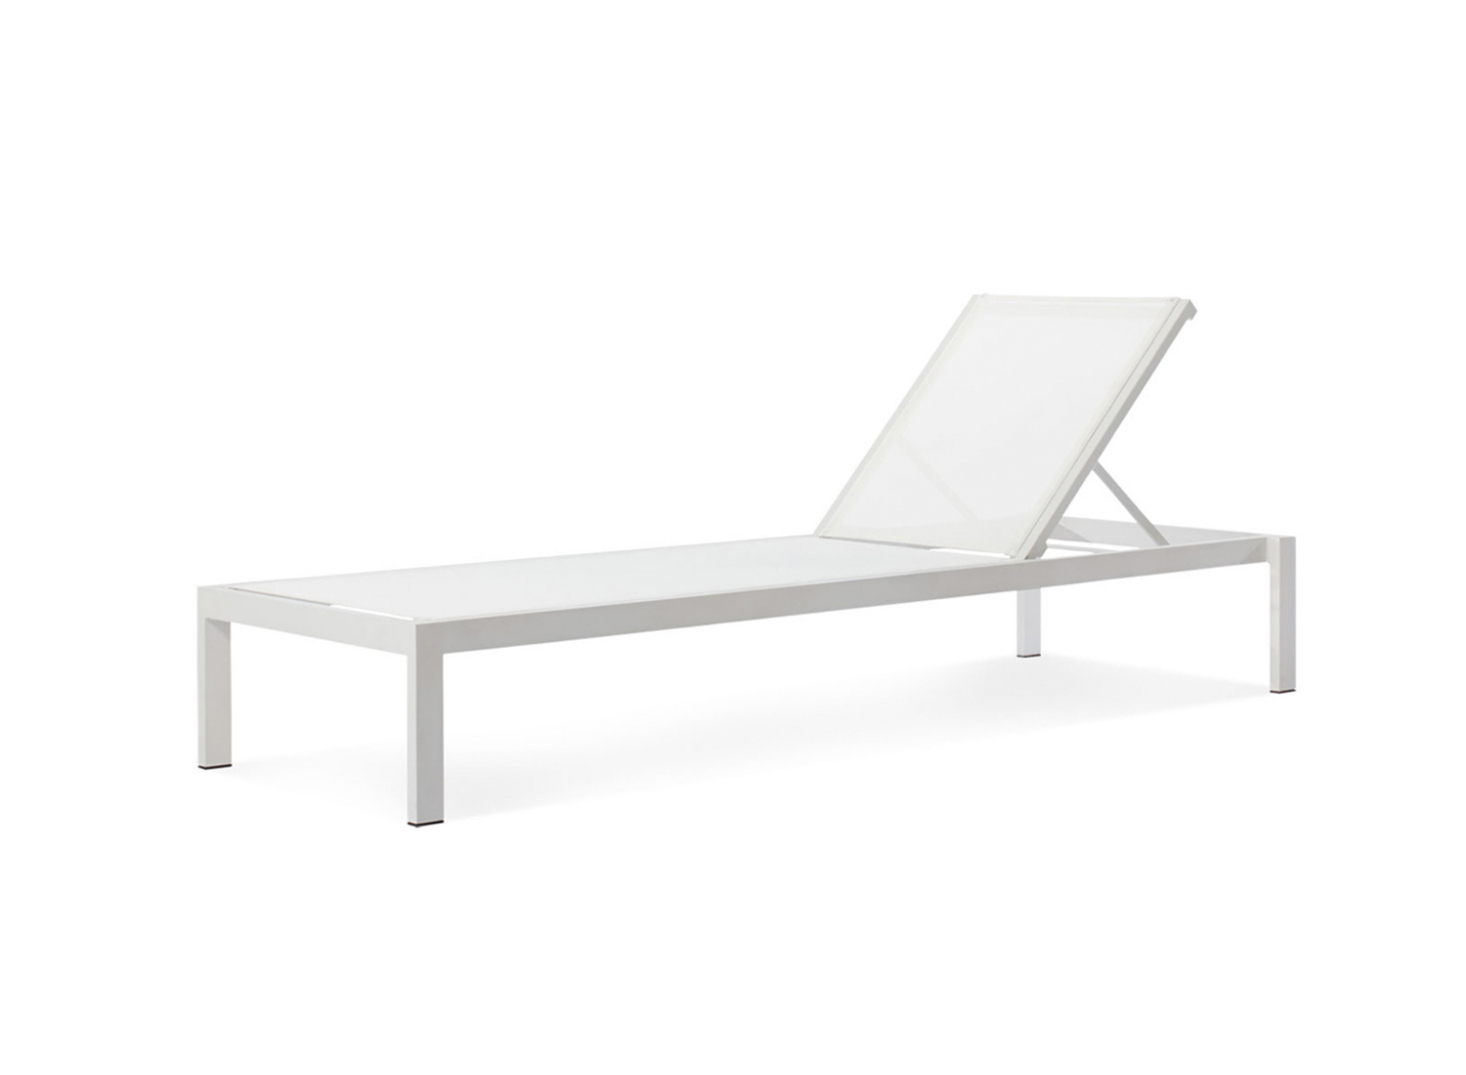 Outdoor Aluminum Chaise Lounges Inside Best And Newest 10 Easy Pieces: Modern White Outdoor Chaise Lounges – Gardenista (View 16 of 25)